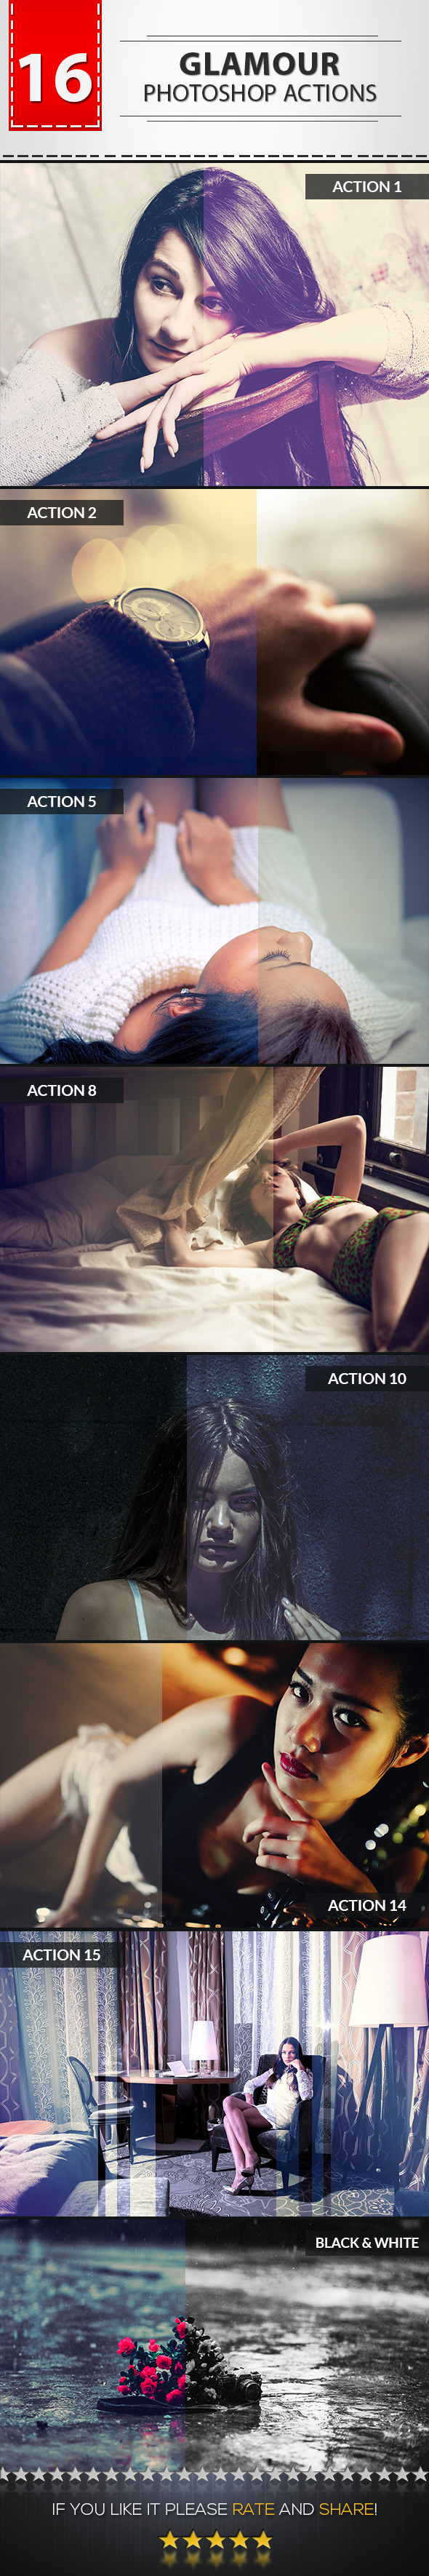 16_glamour_photoshop_actions_9719399